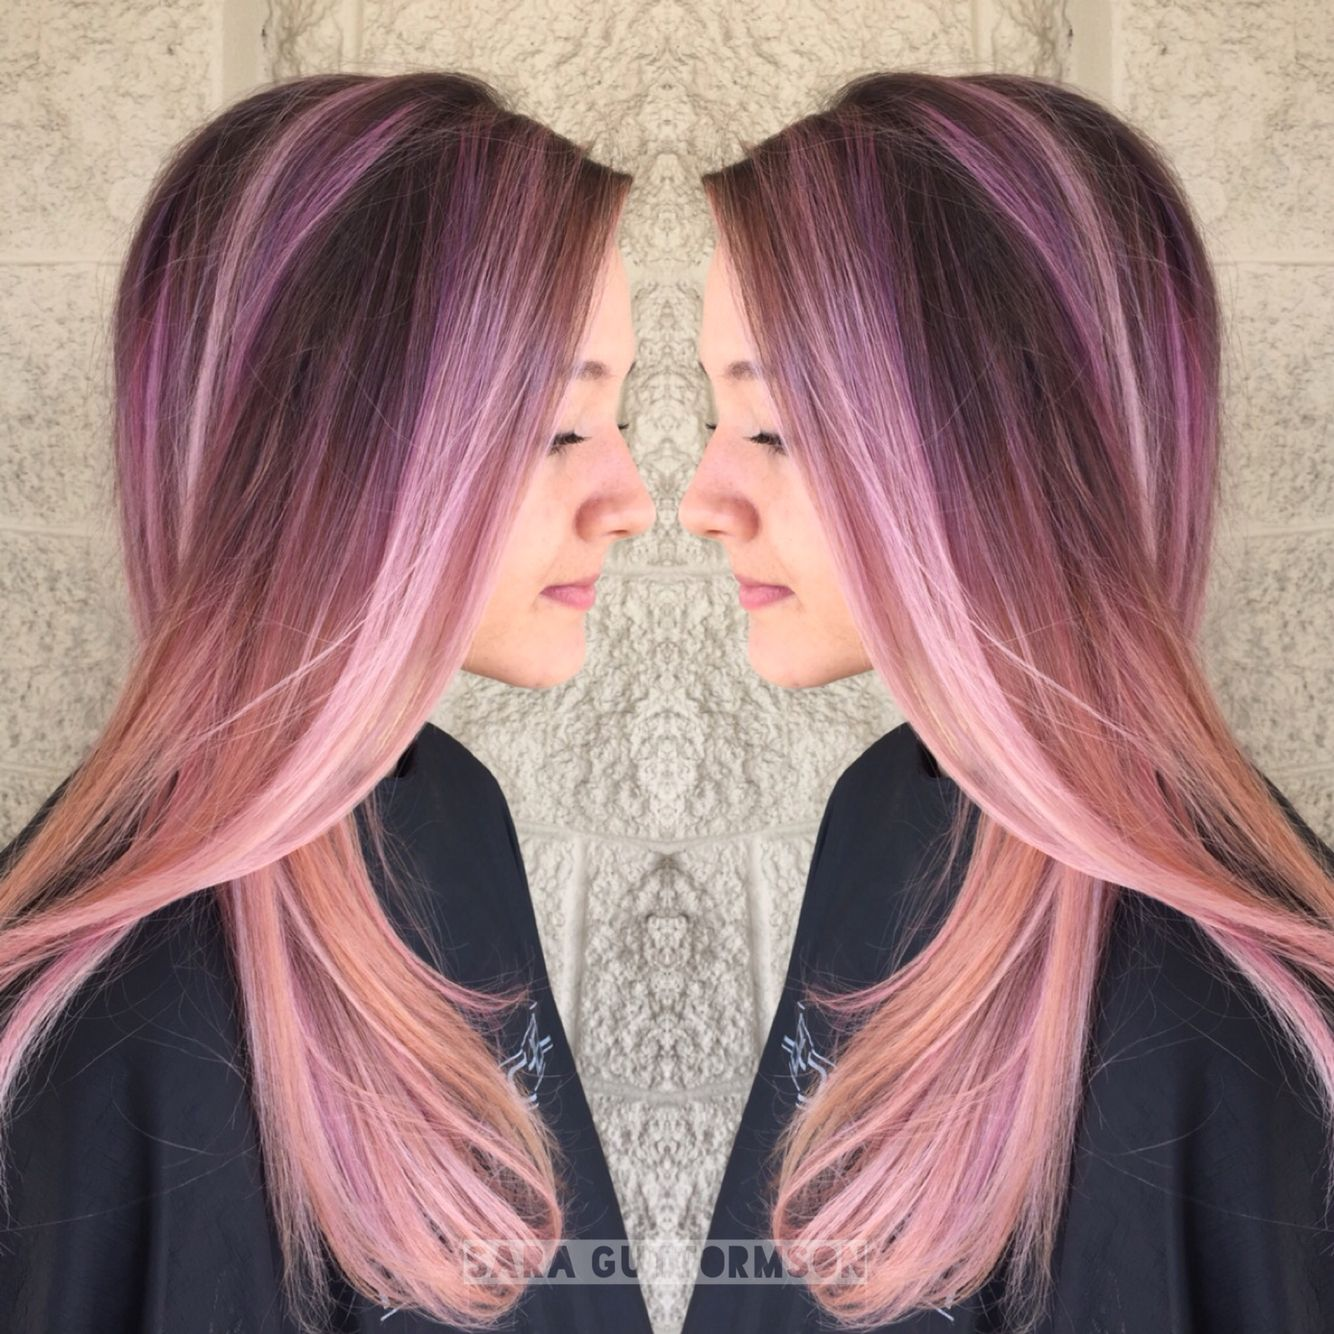 Pastel pink coral balayage hair instagram saraghair hair envy